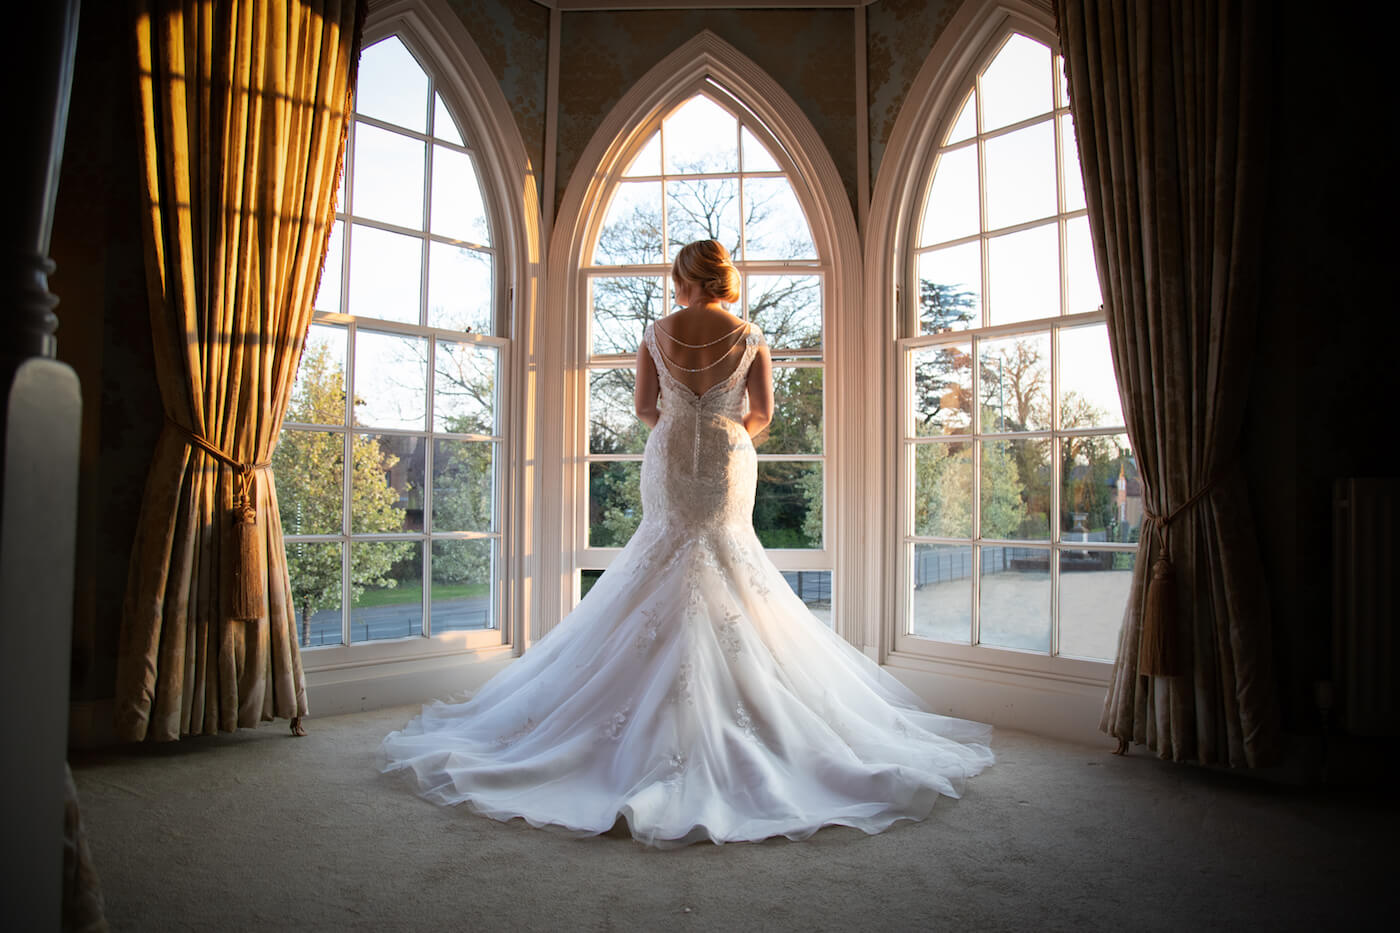 Bride in Bridal Suite at Warwick House